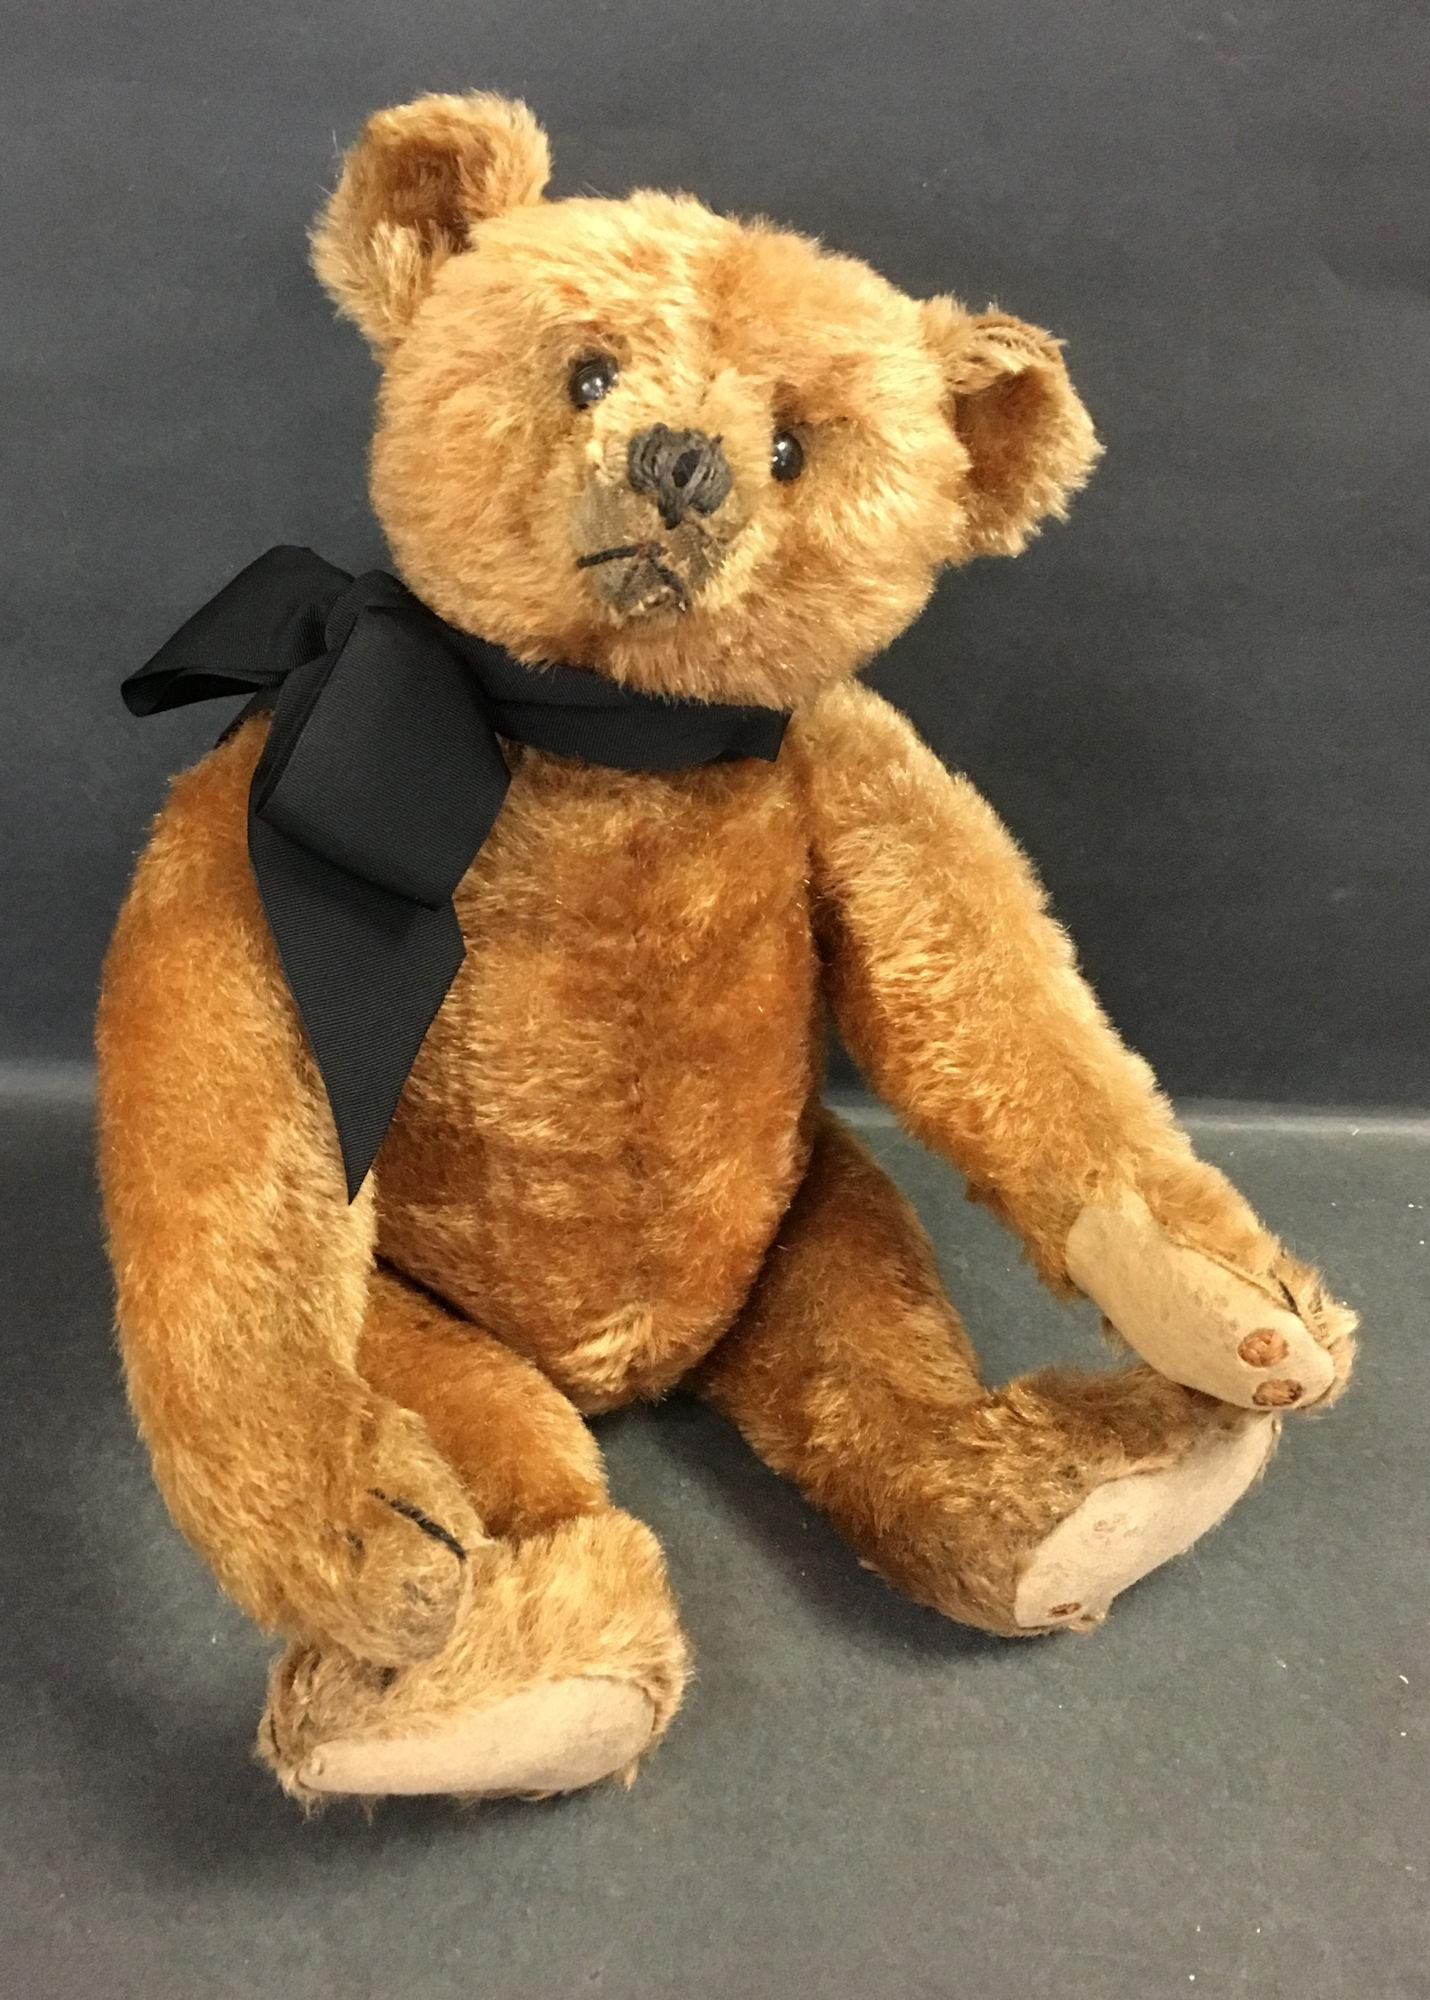 EARLY STEIFF CINNAMON MOHAIR CENTER SEAM TEDDY BEAR.